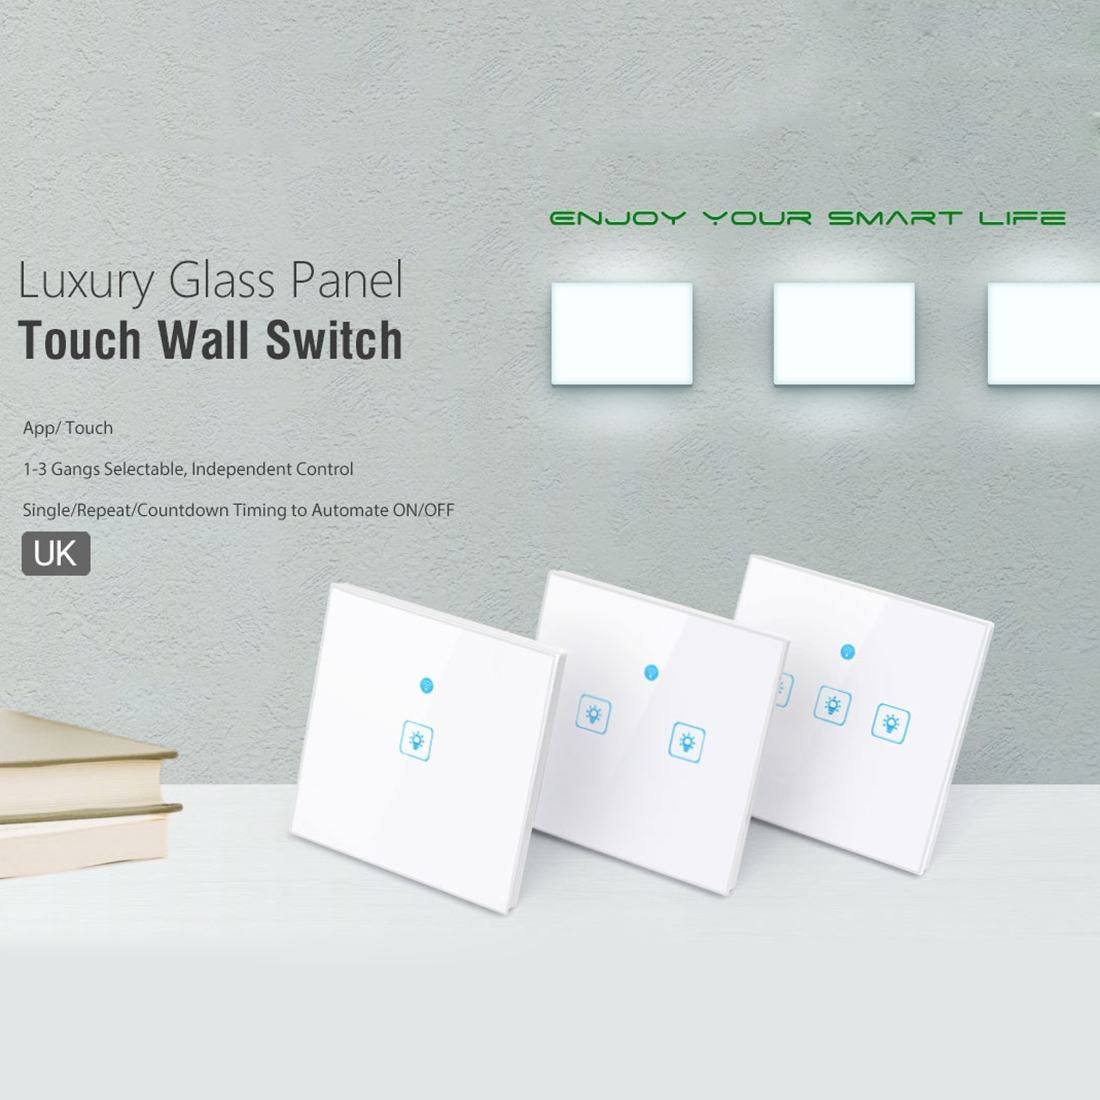 WS-UK-02 EWeLink APP & Touch Control 2A 2 Gangs 2 Ways Tempered Glass Panel  Smart Wall Switch, AC 90V-250V, UK Plug